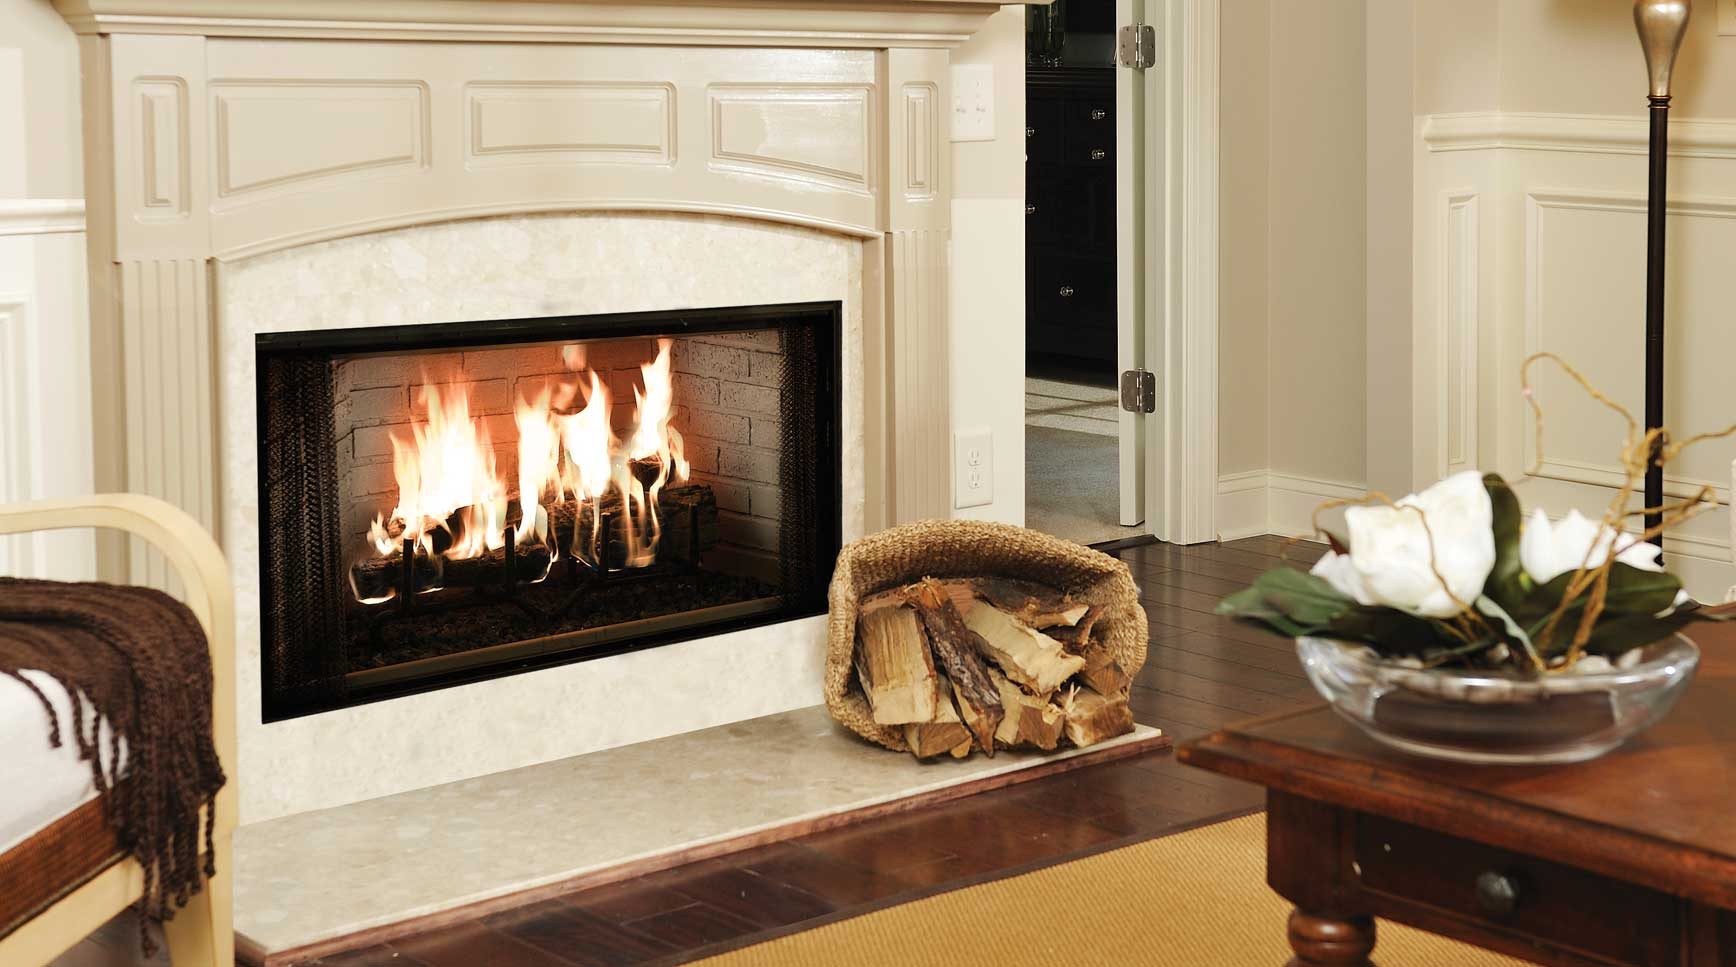 ideas colors fireplace living kitchen room needs home elements liner awesome with that every electric mantel